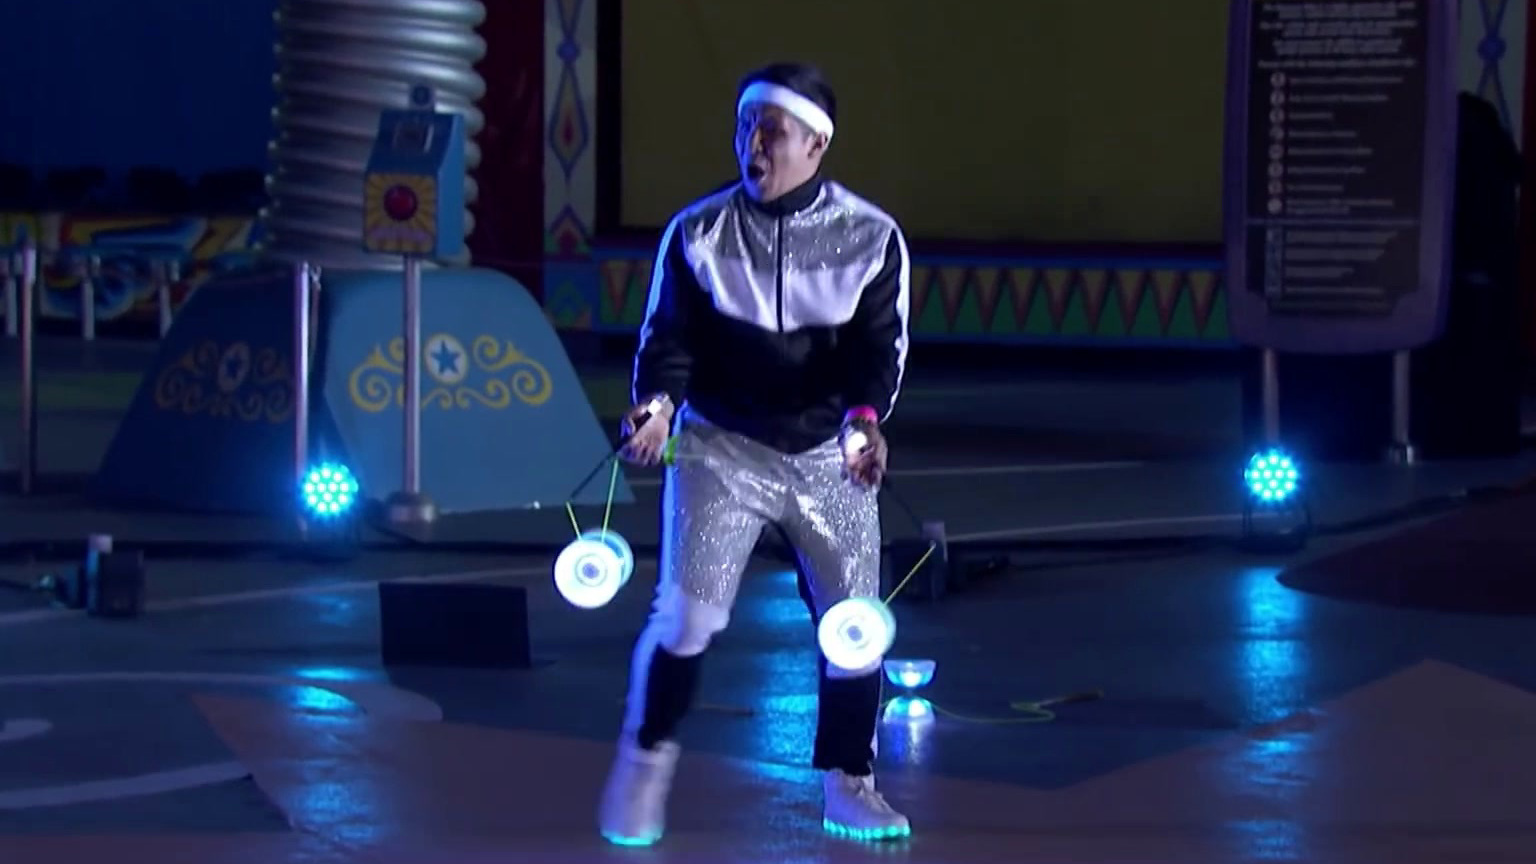 America's Got Talent: Spyros Bros Performs Epic Glow-In-The-Dark Diabolo Routine